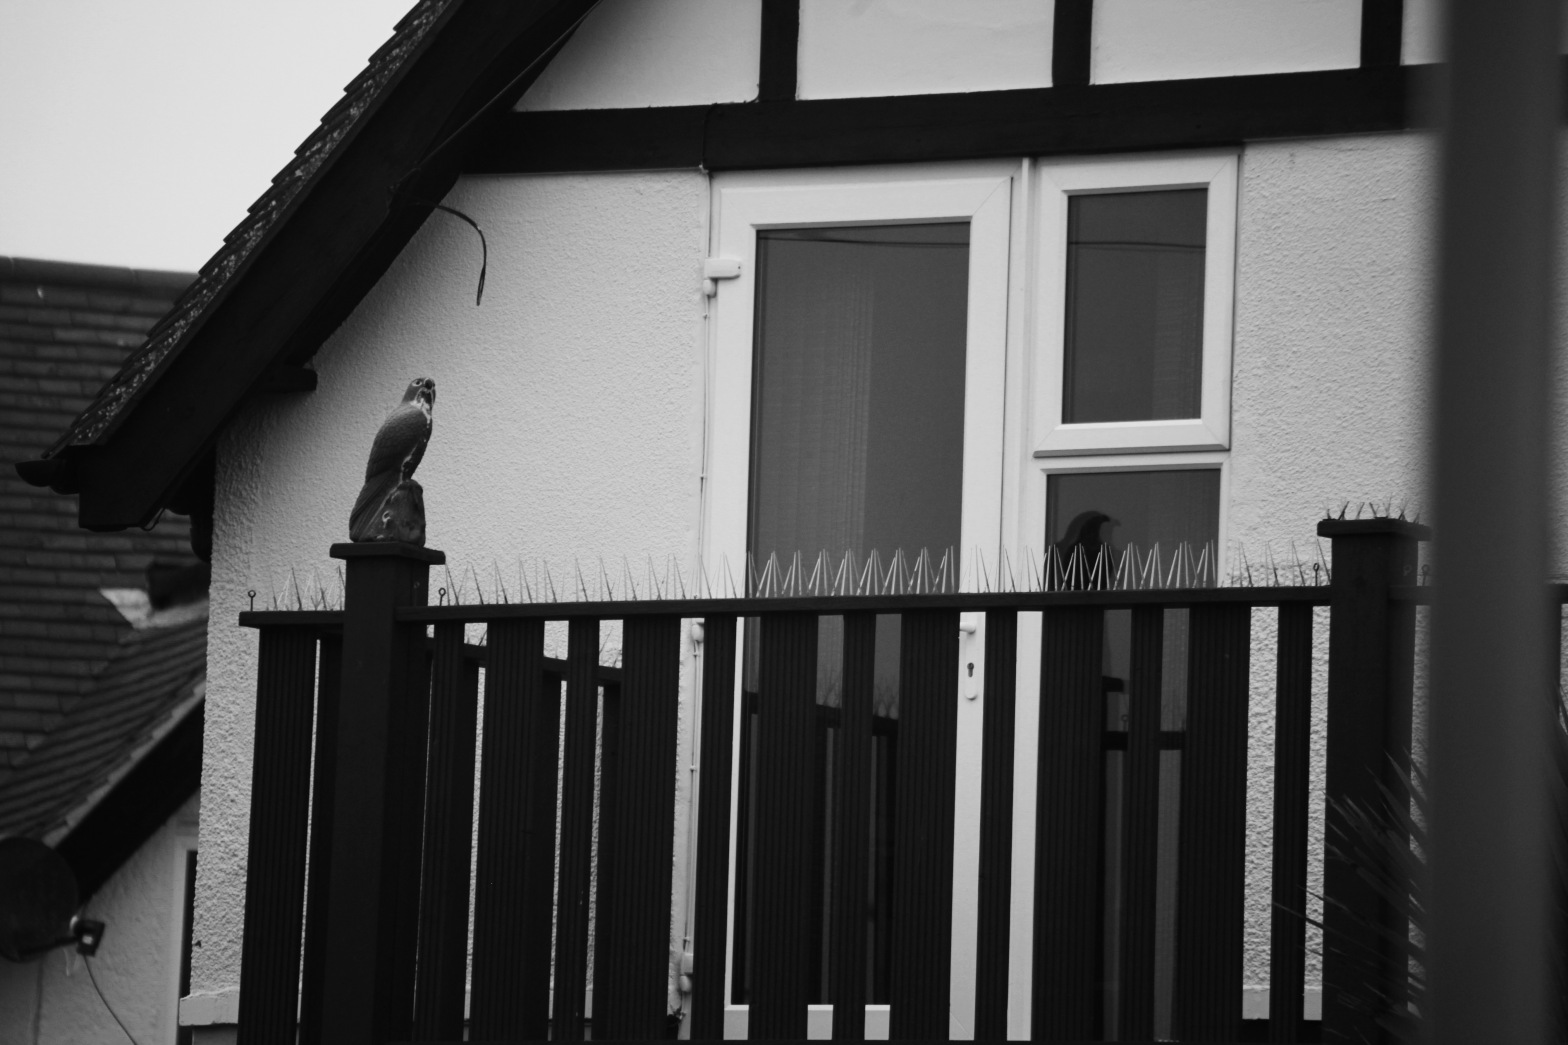 Bird of prey decoy and spiked balcony